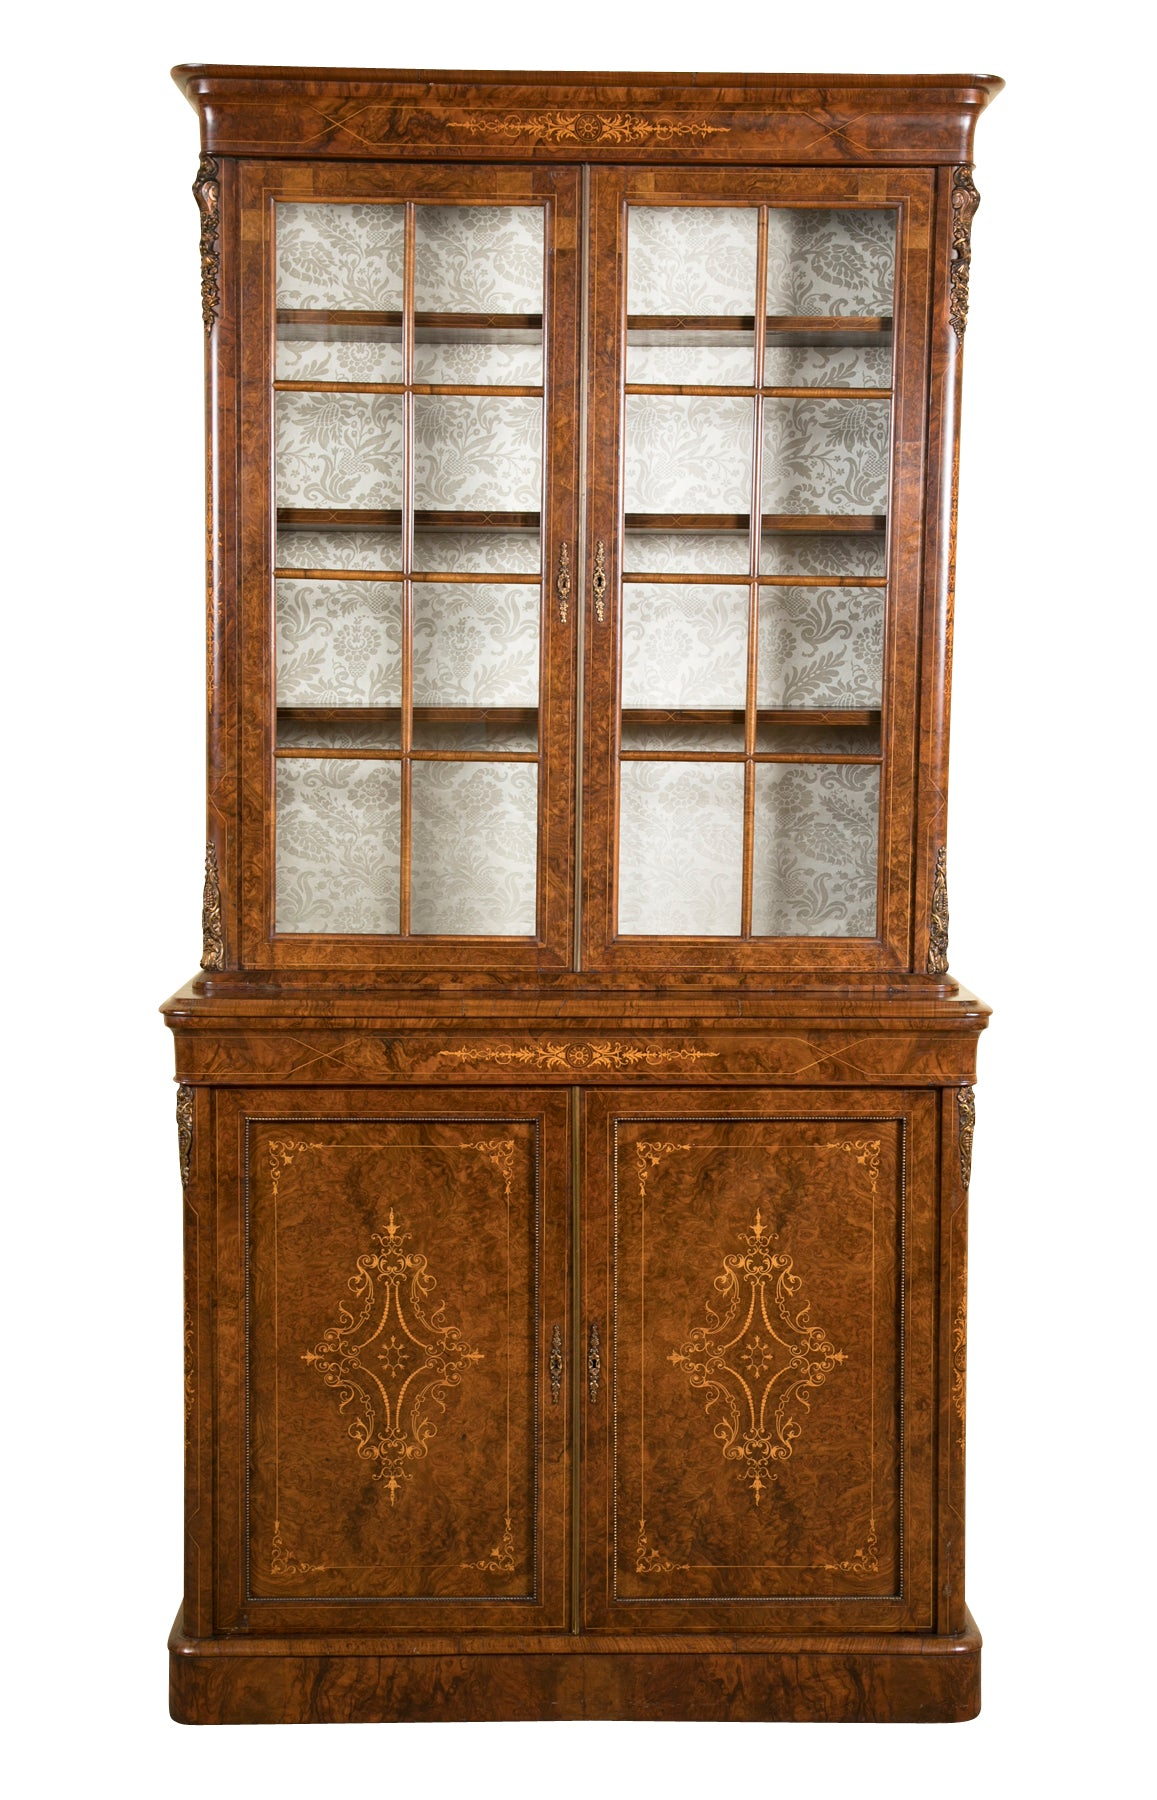 white country provincial style furniture bookcase cabinet farmhouse french rustic cupboard